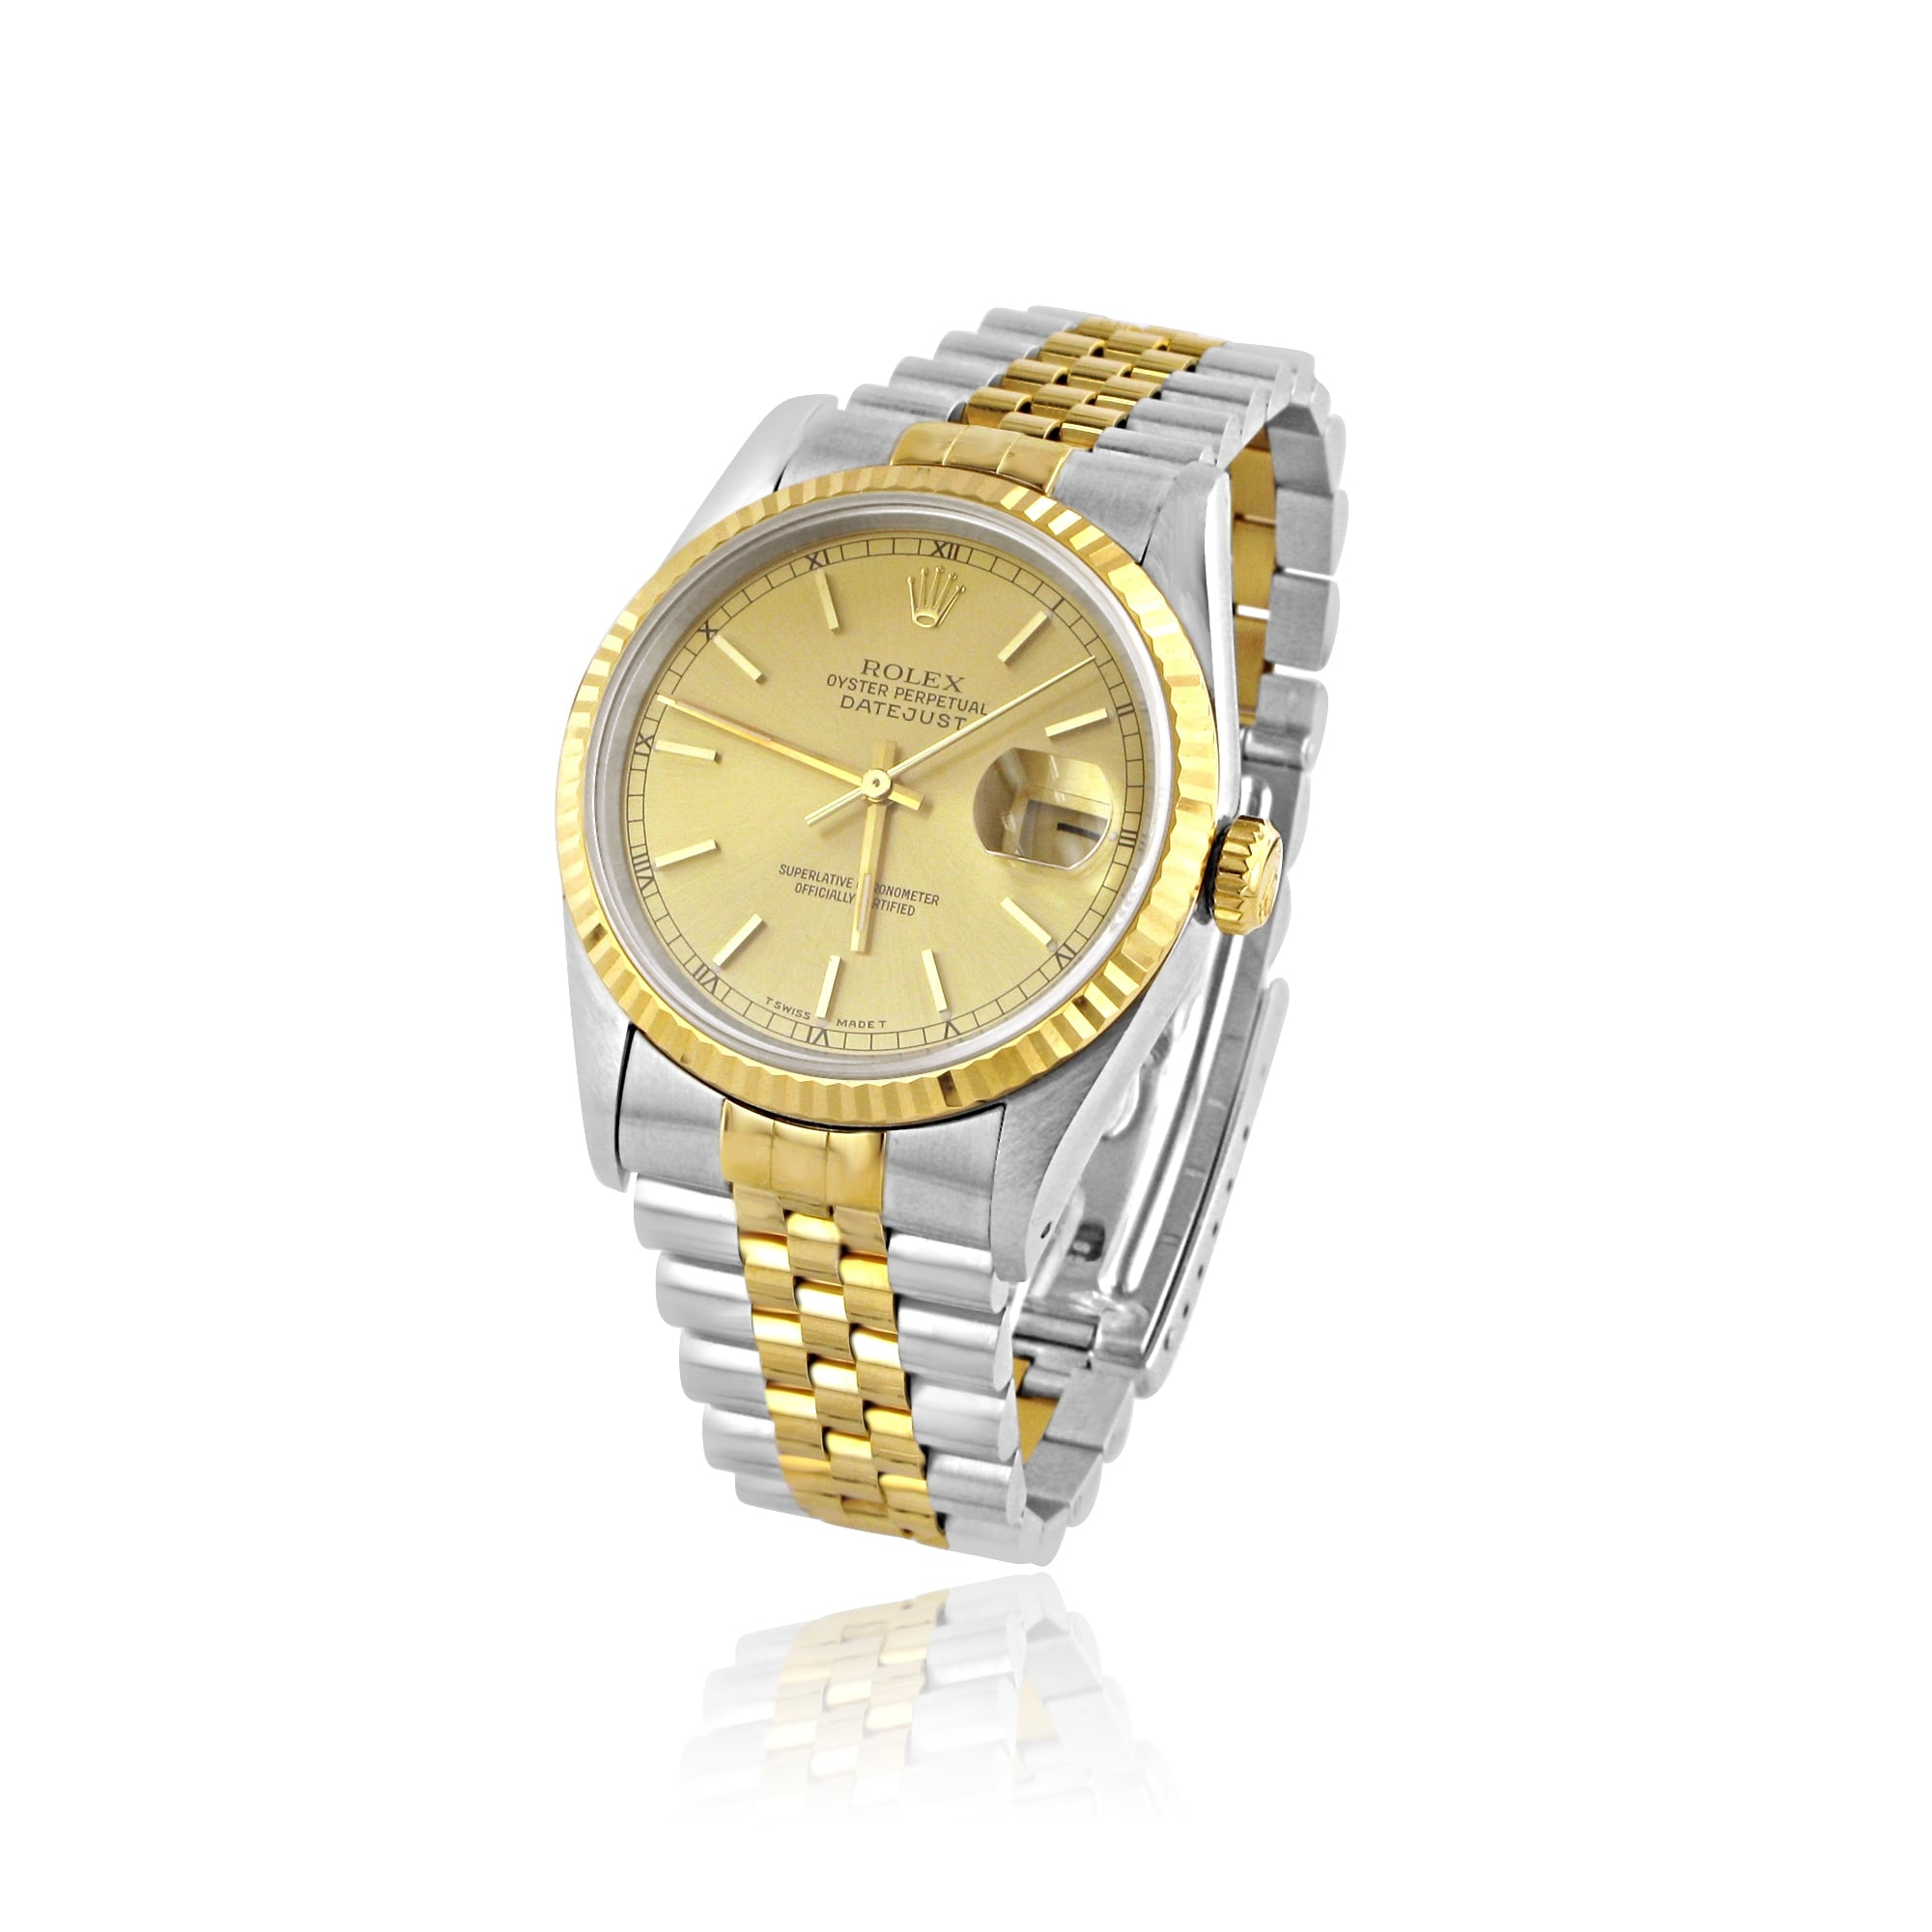 a9dd369640ae4 Pre-owned Mens Steel and 18ct Gold Rolex Datejust Watch with Champagne Dial